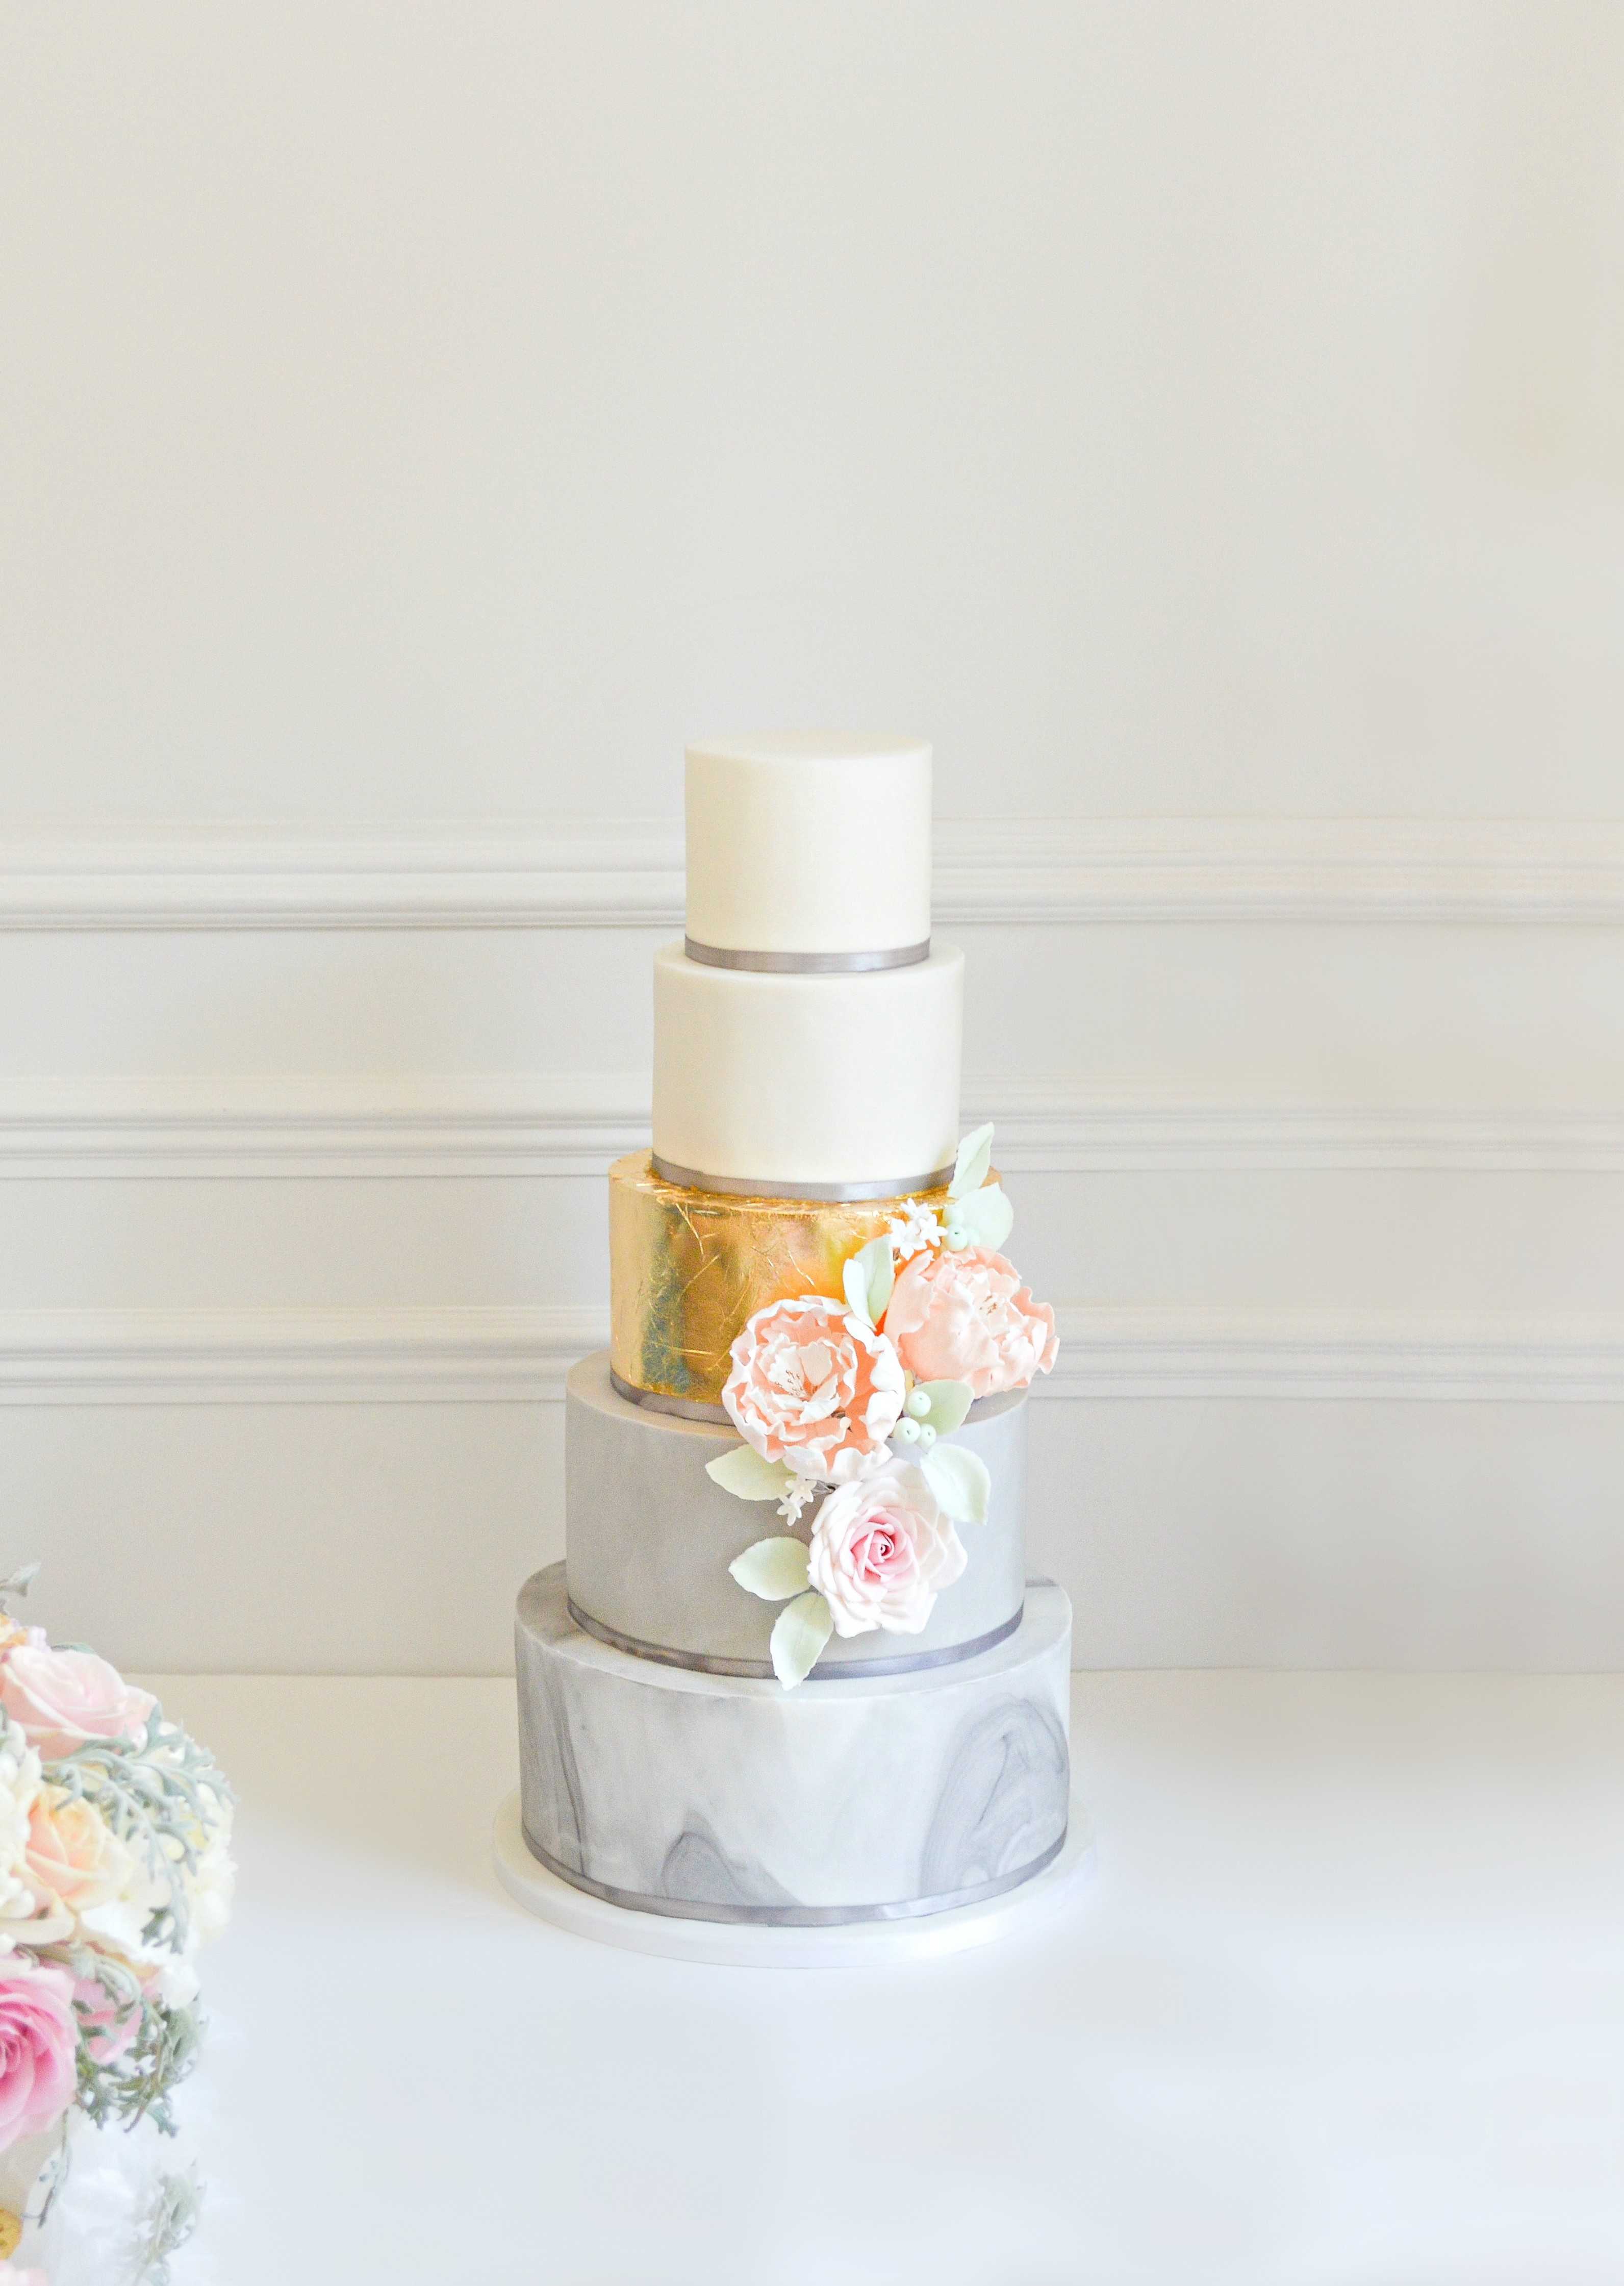 Marble pattern wedding cake with gold leaf tier Cherie Kelly cakes London Hedsor House